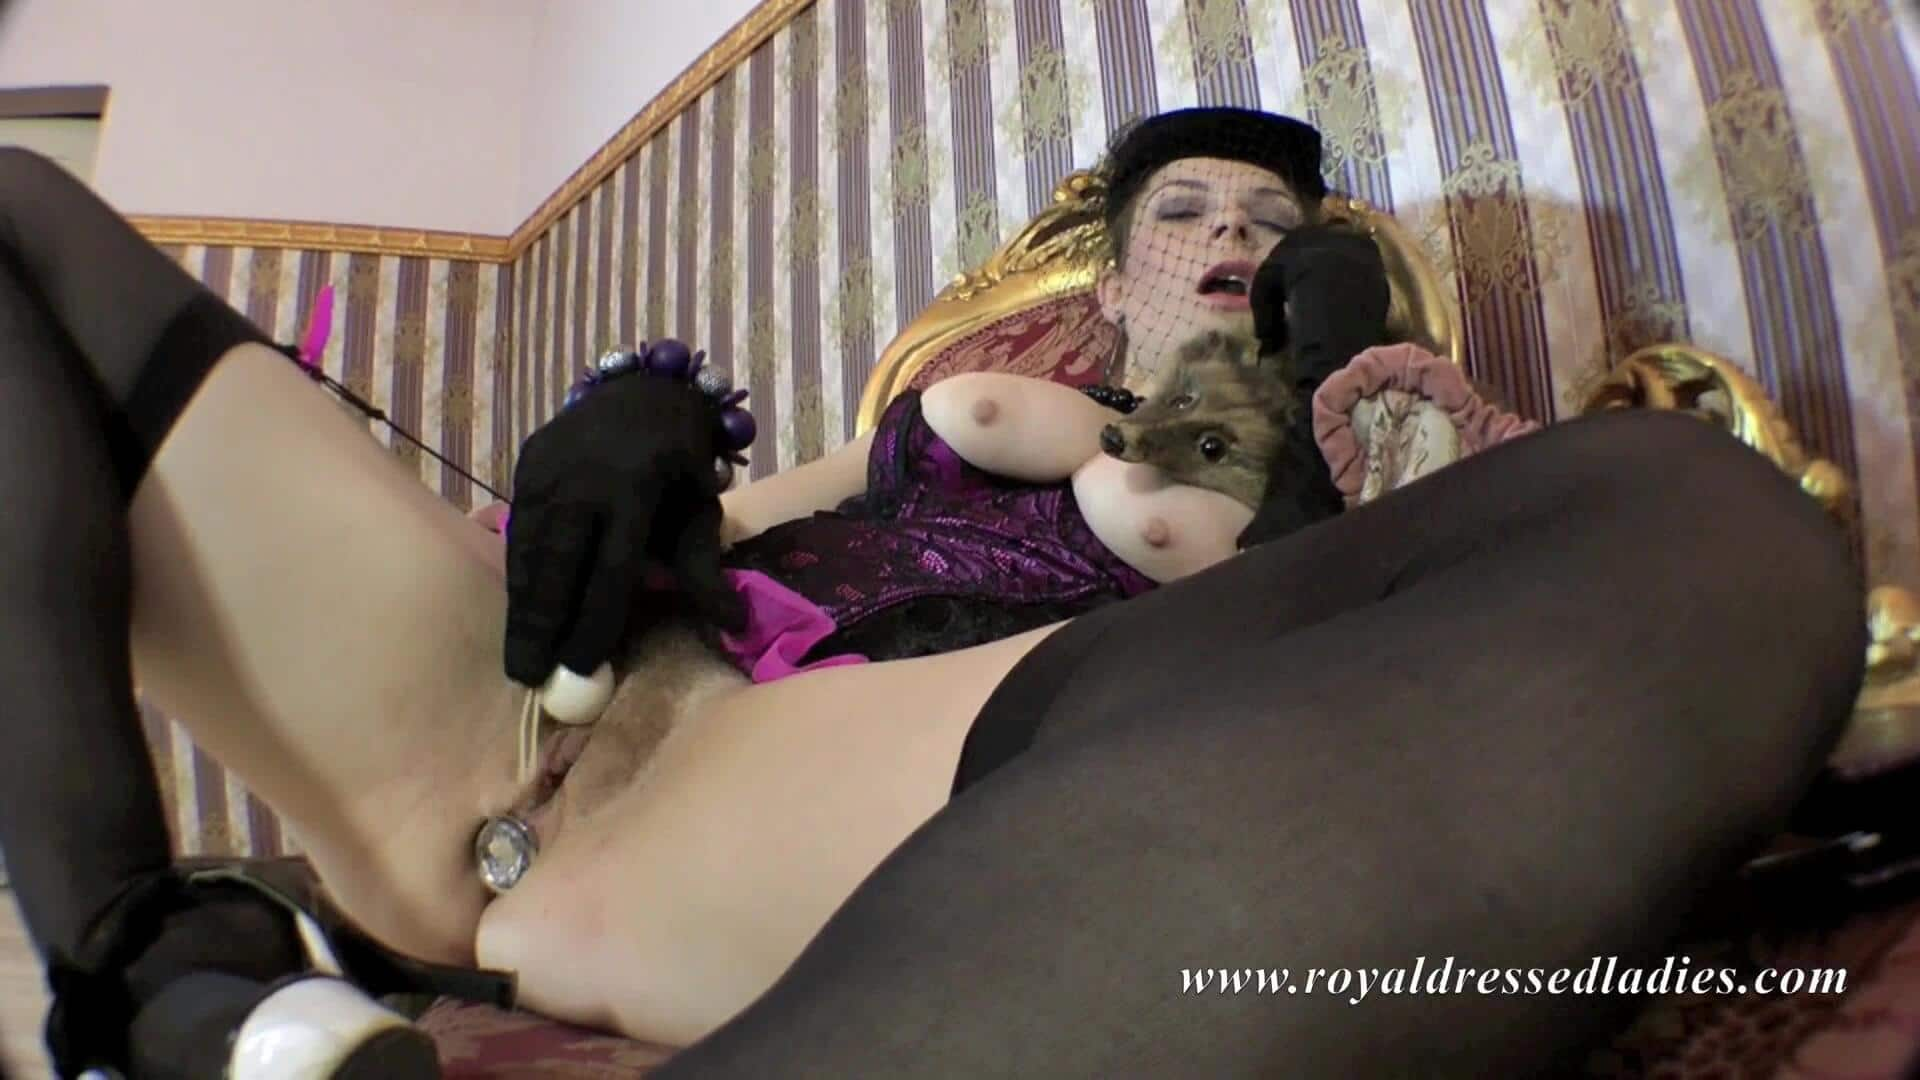 Perverted Sophisticated Busty Glamour Lady Part 3 - RDL